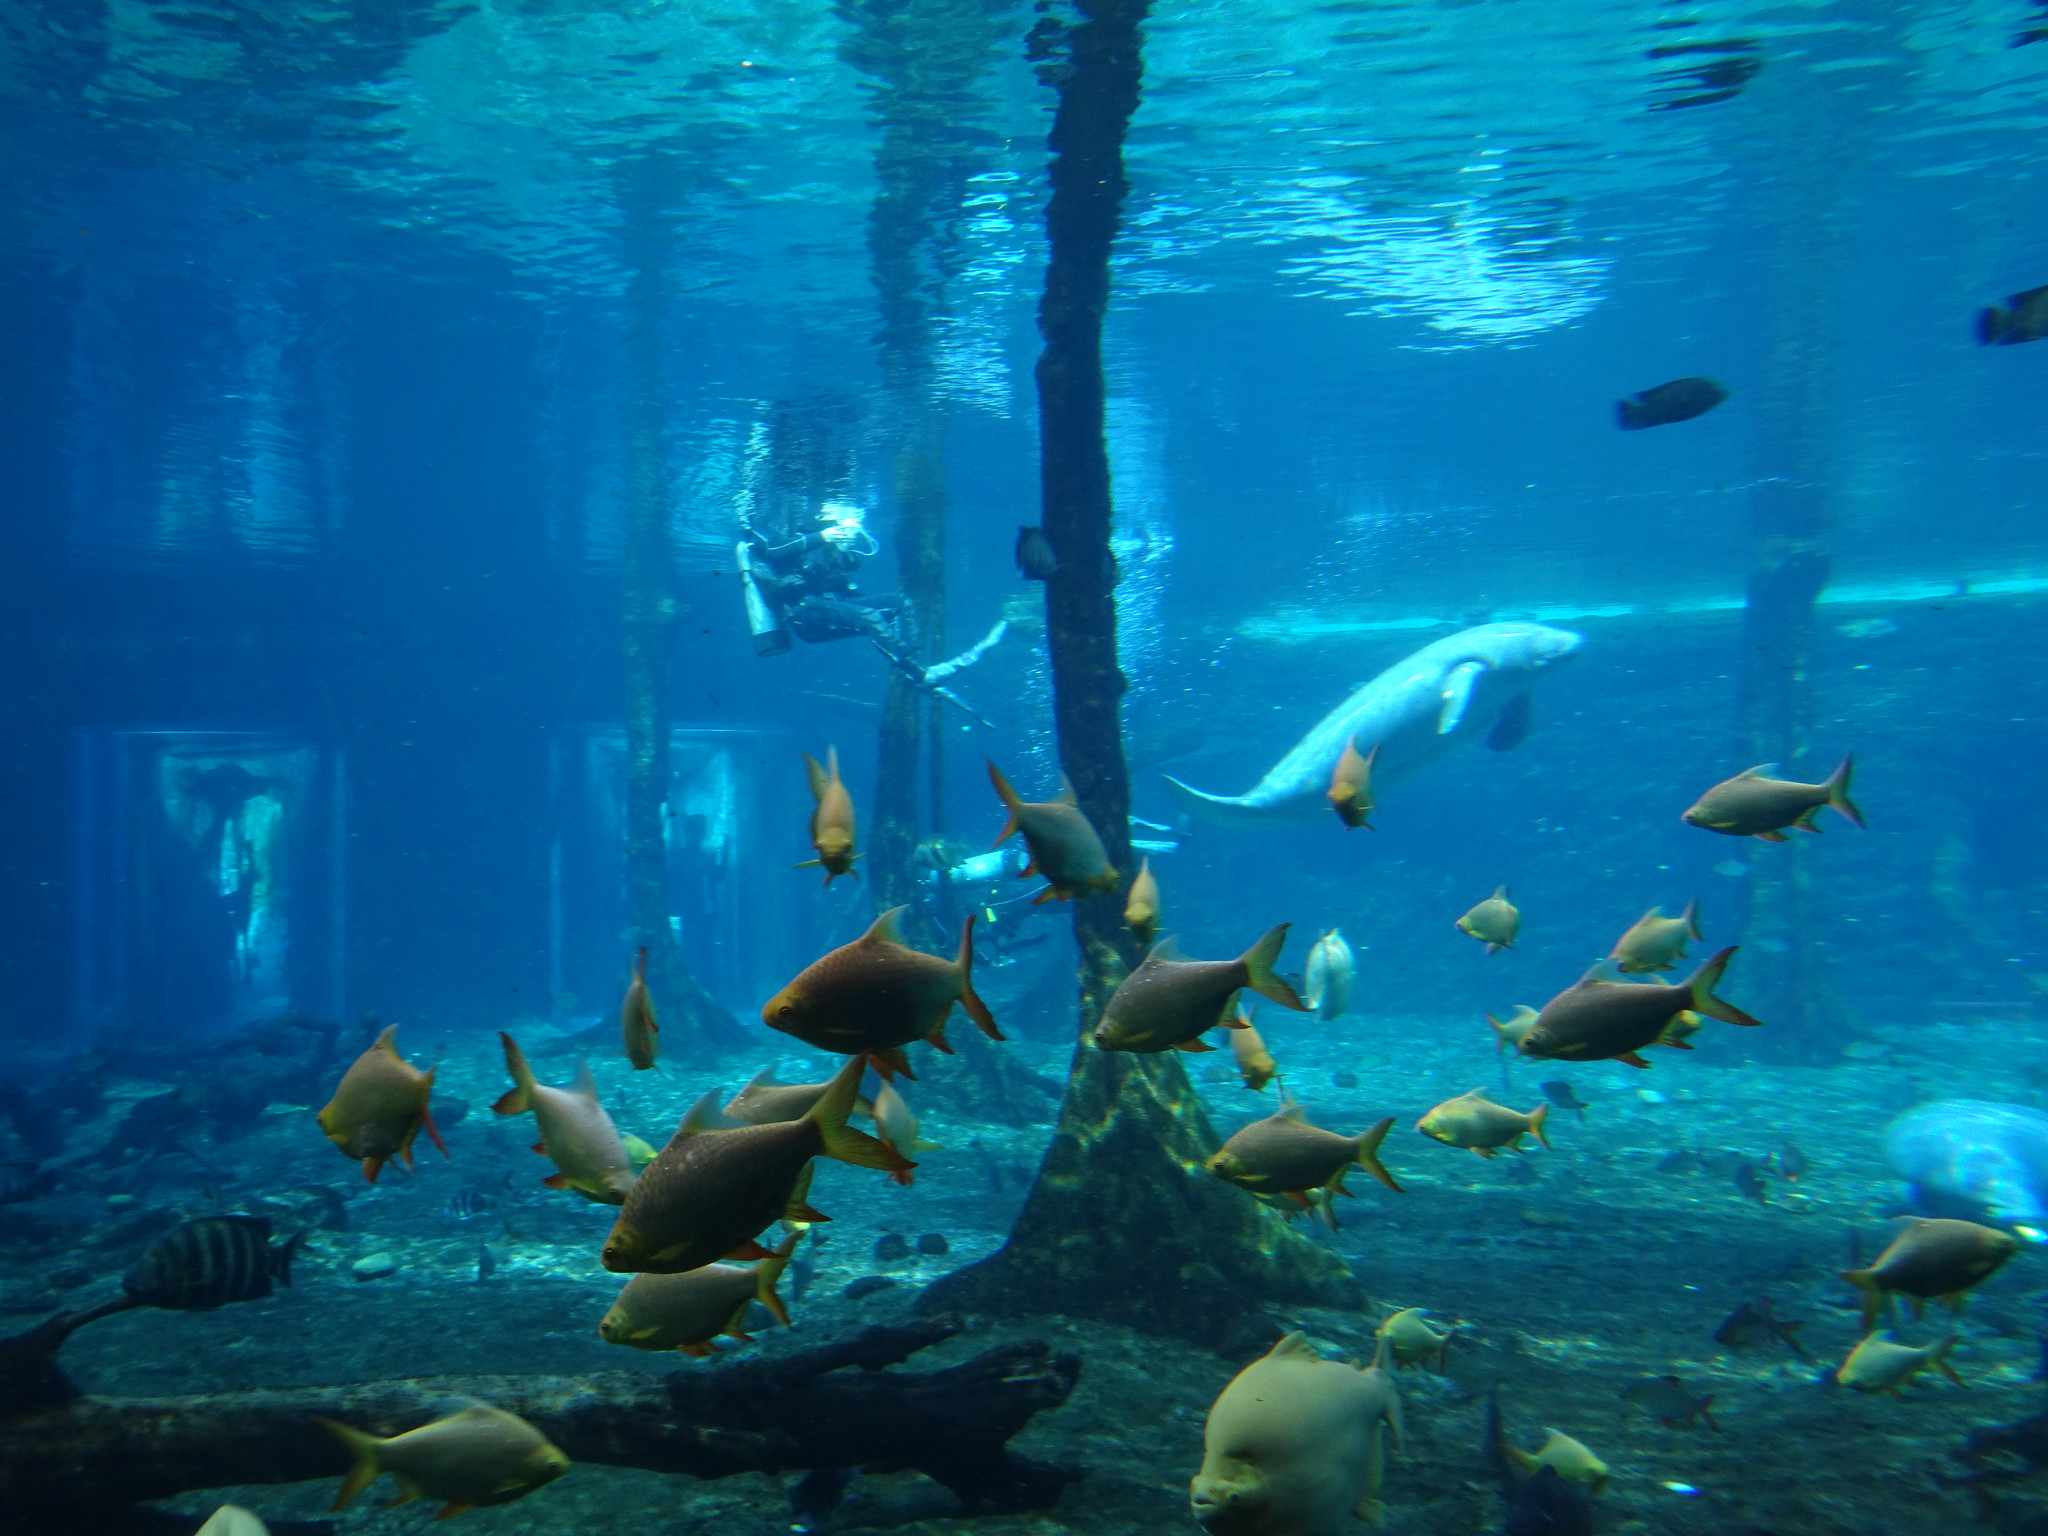 View of aquarium tank at Chimelong Ocean Kingdom with tropical fish and a beluga whale